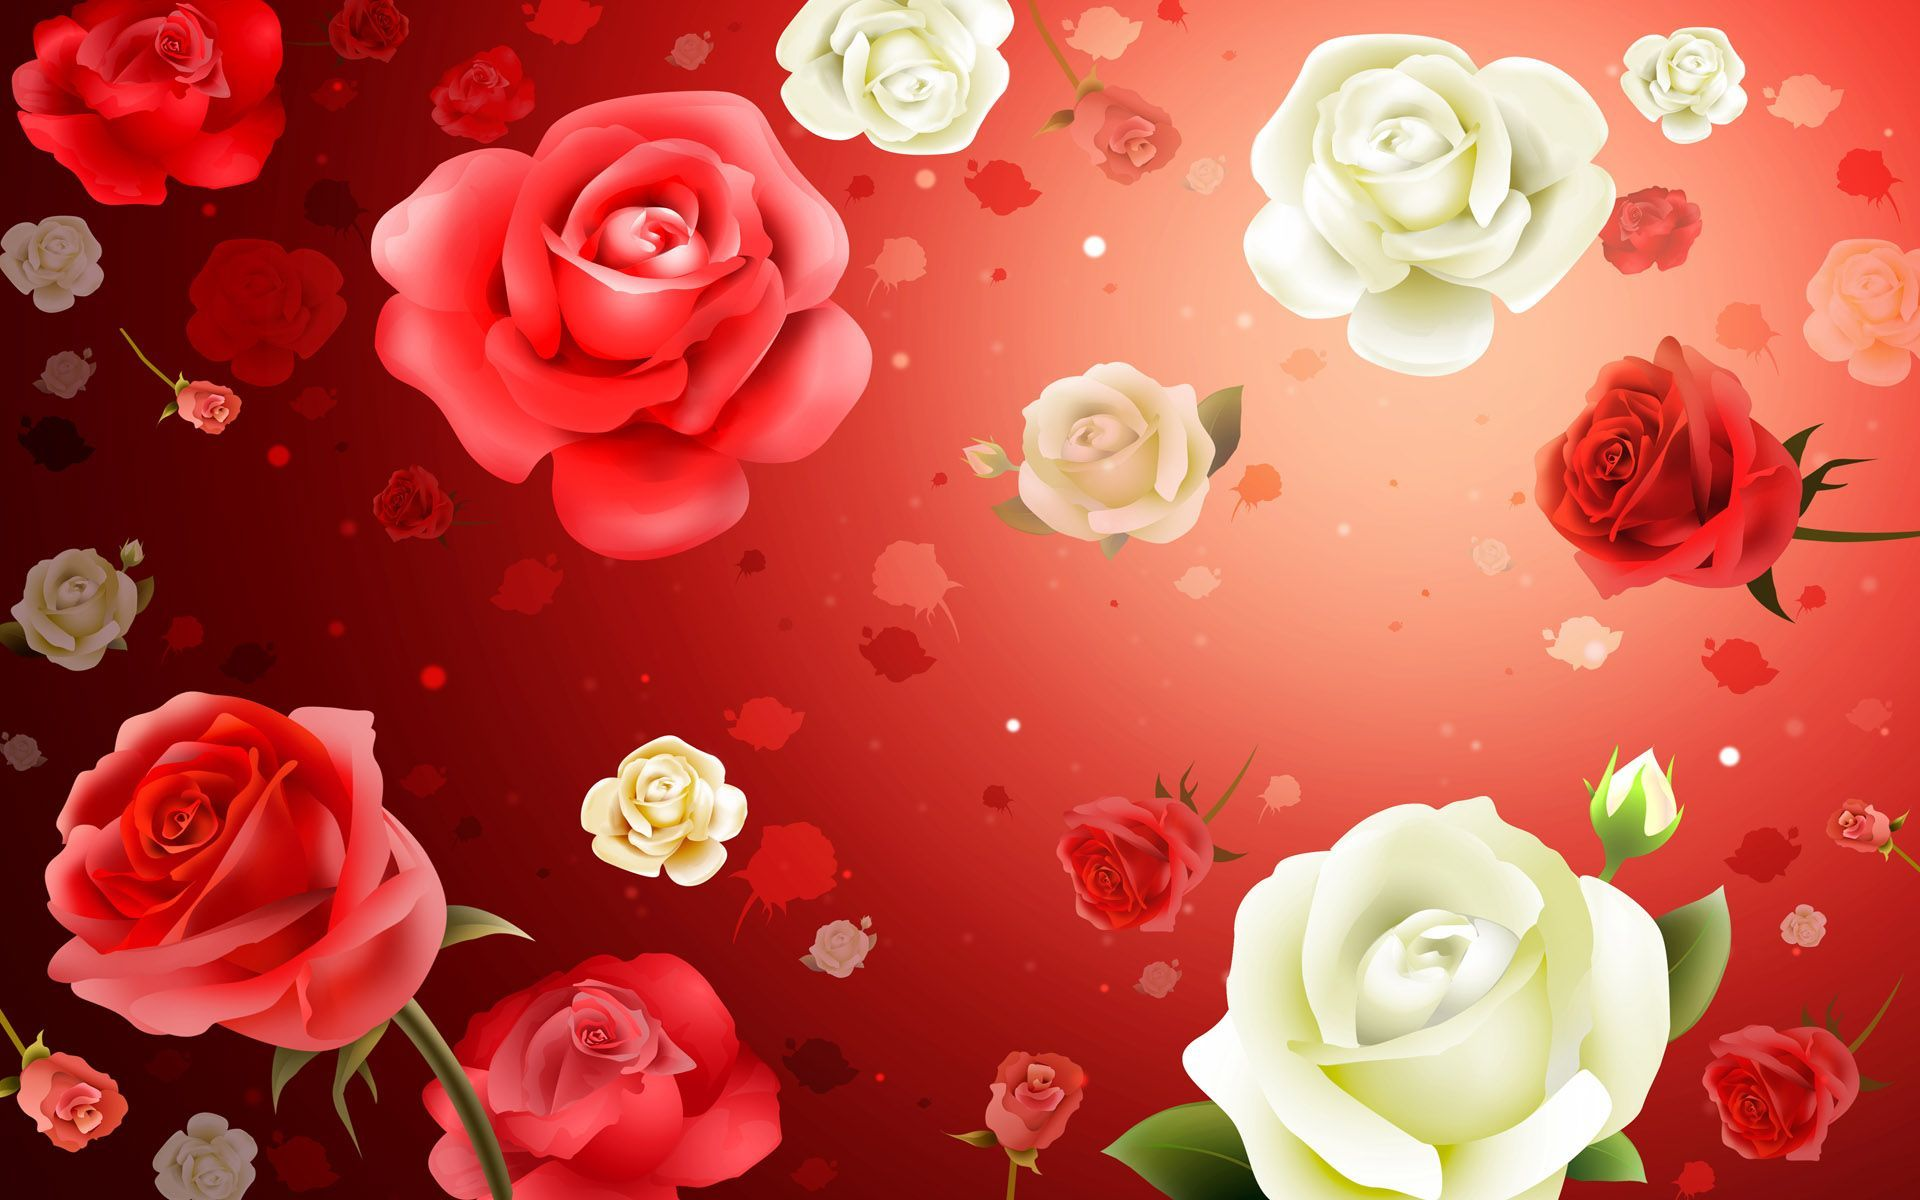 Roses Wallpapers For Desktop - Wallpaper Cave